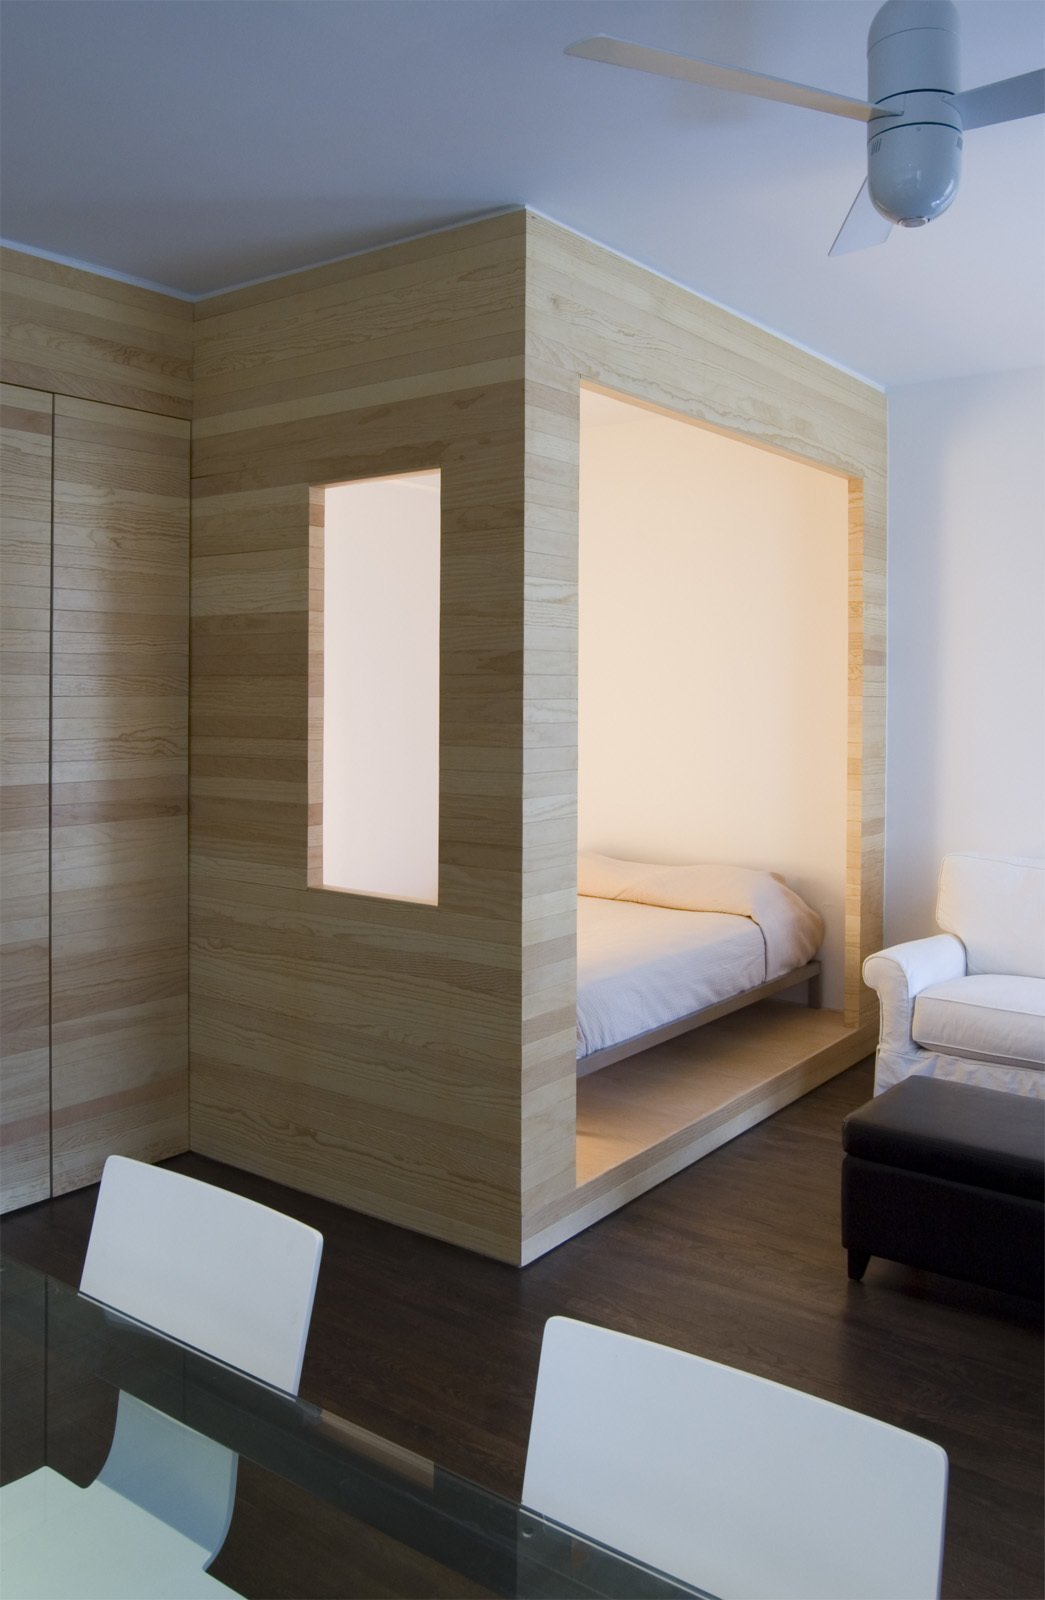 Studio Apartment Sleeping Solutions Photo 4 Of 11 In 11 Hidden Beds In Small Homes Dwell